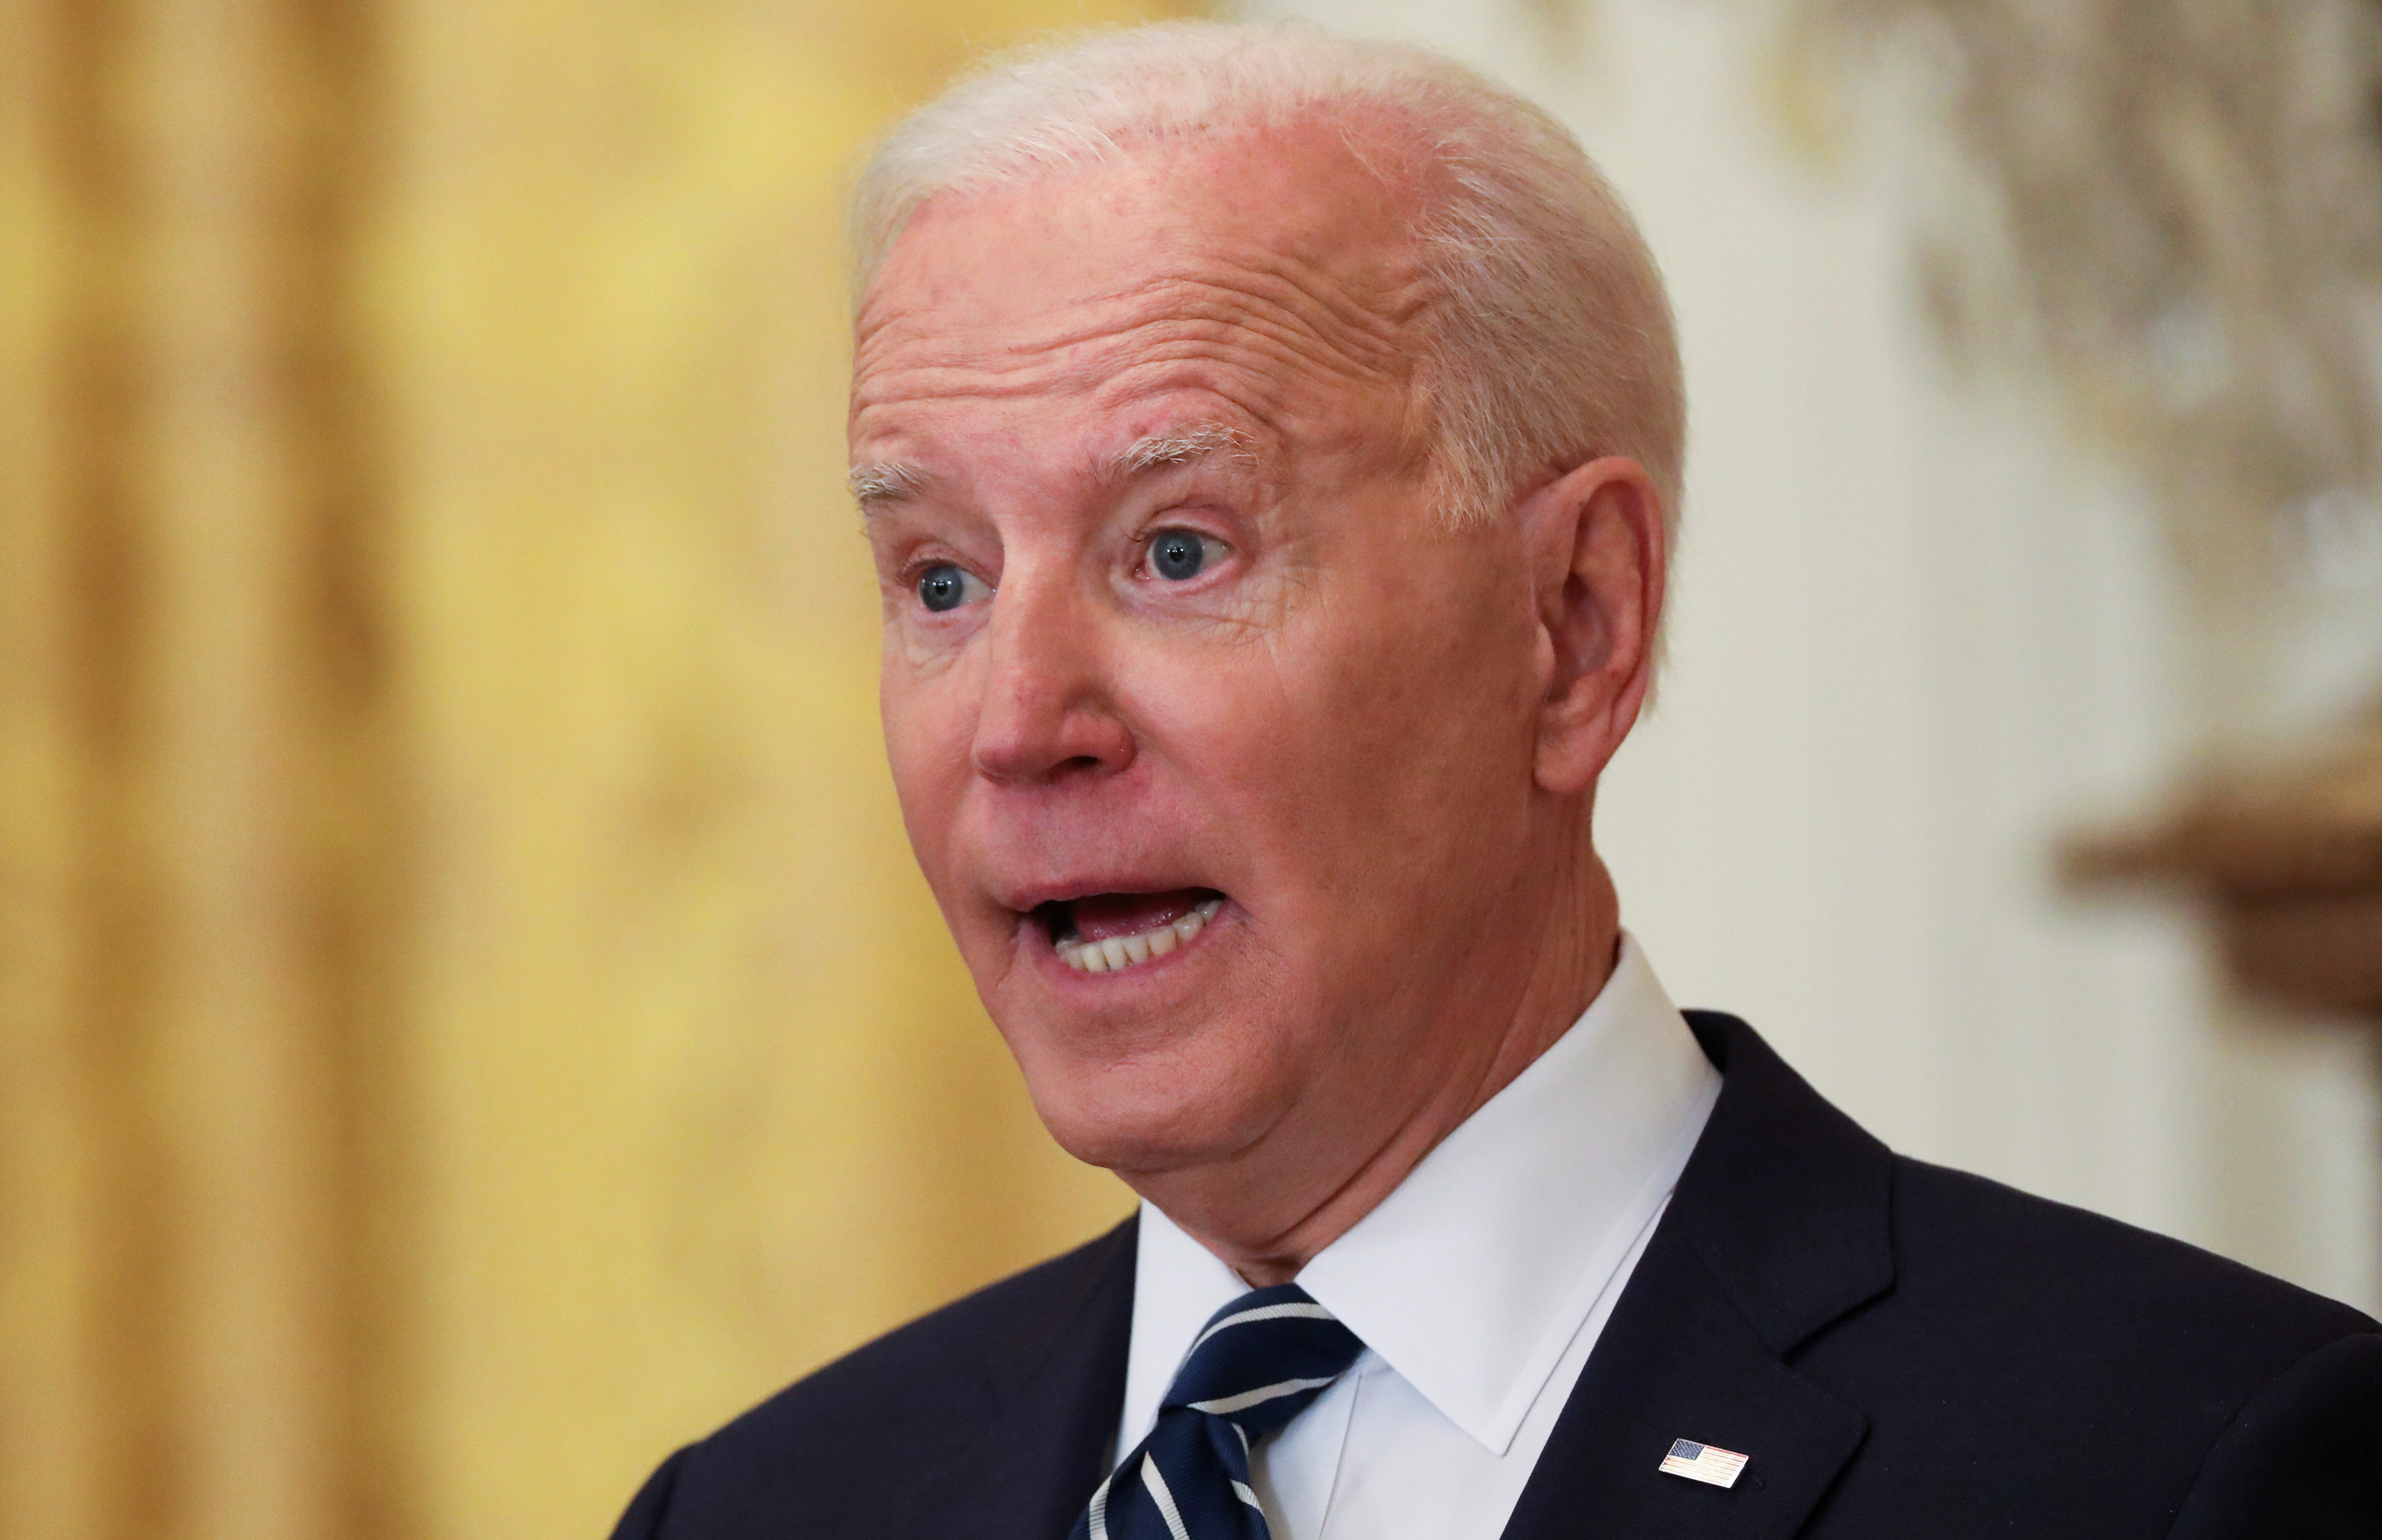 U.S. President Joe Biden answers a question as he holds his first formal news conference as president in the East Room of the White House in Washington, U.S., March 25, 2021. REUTERS/Leah Millis